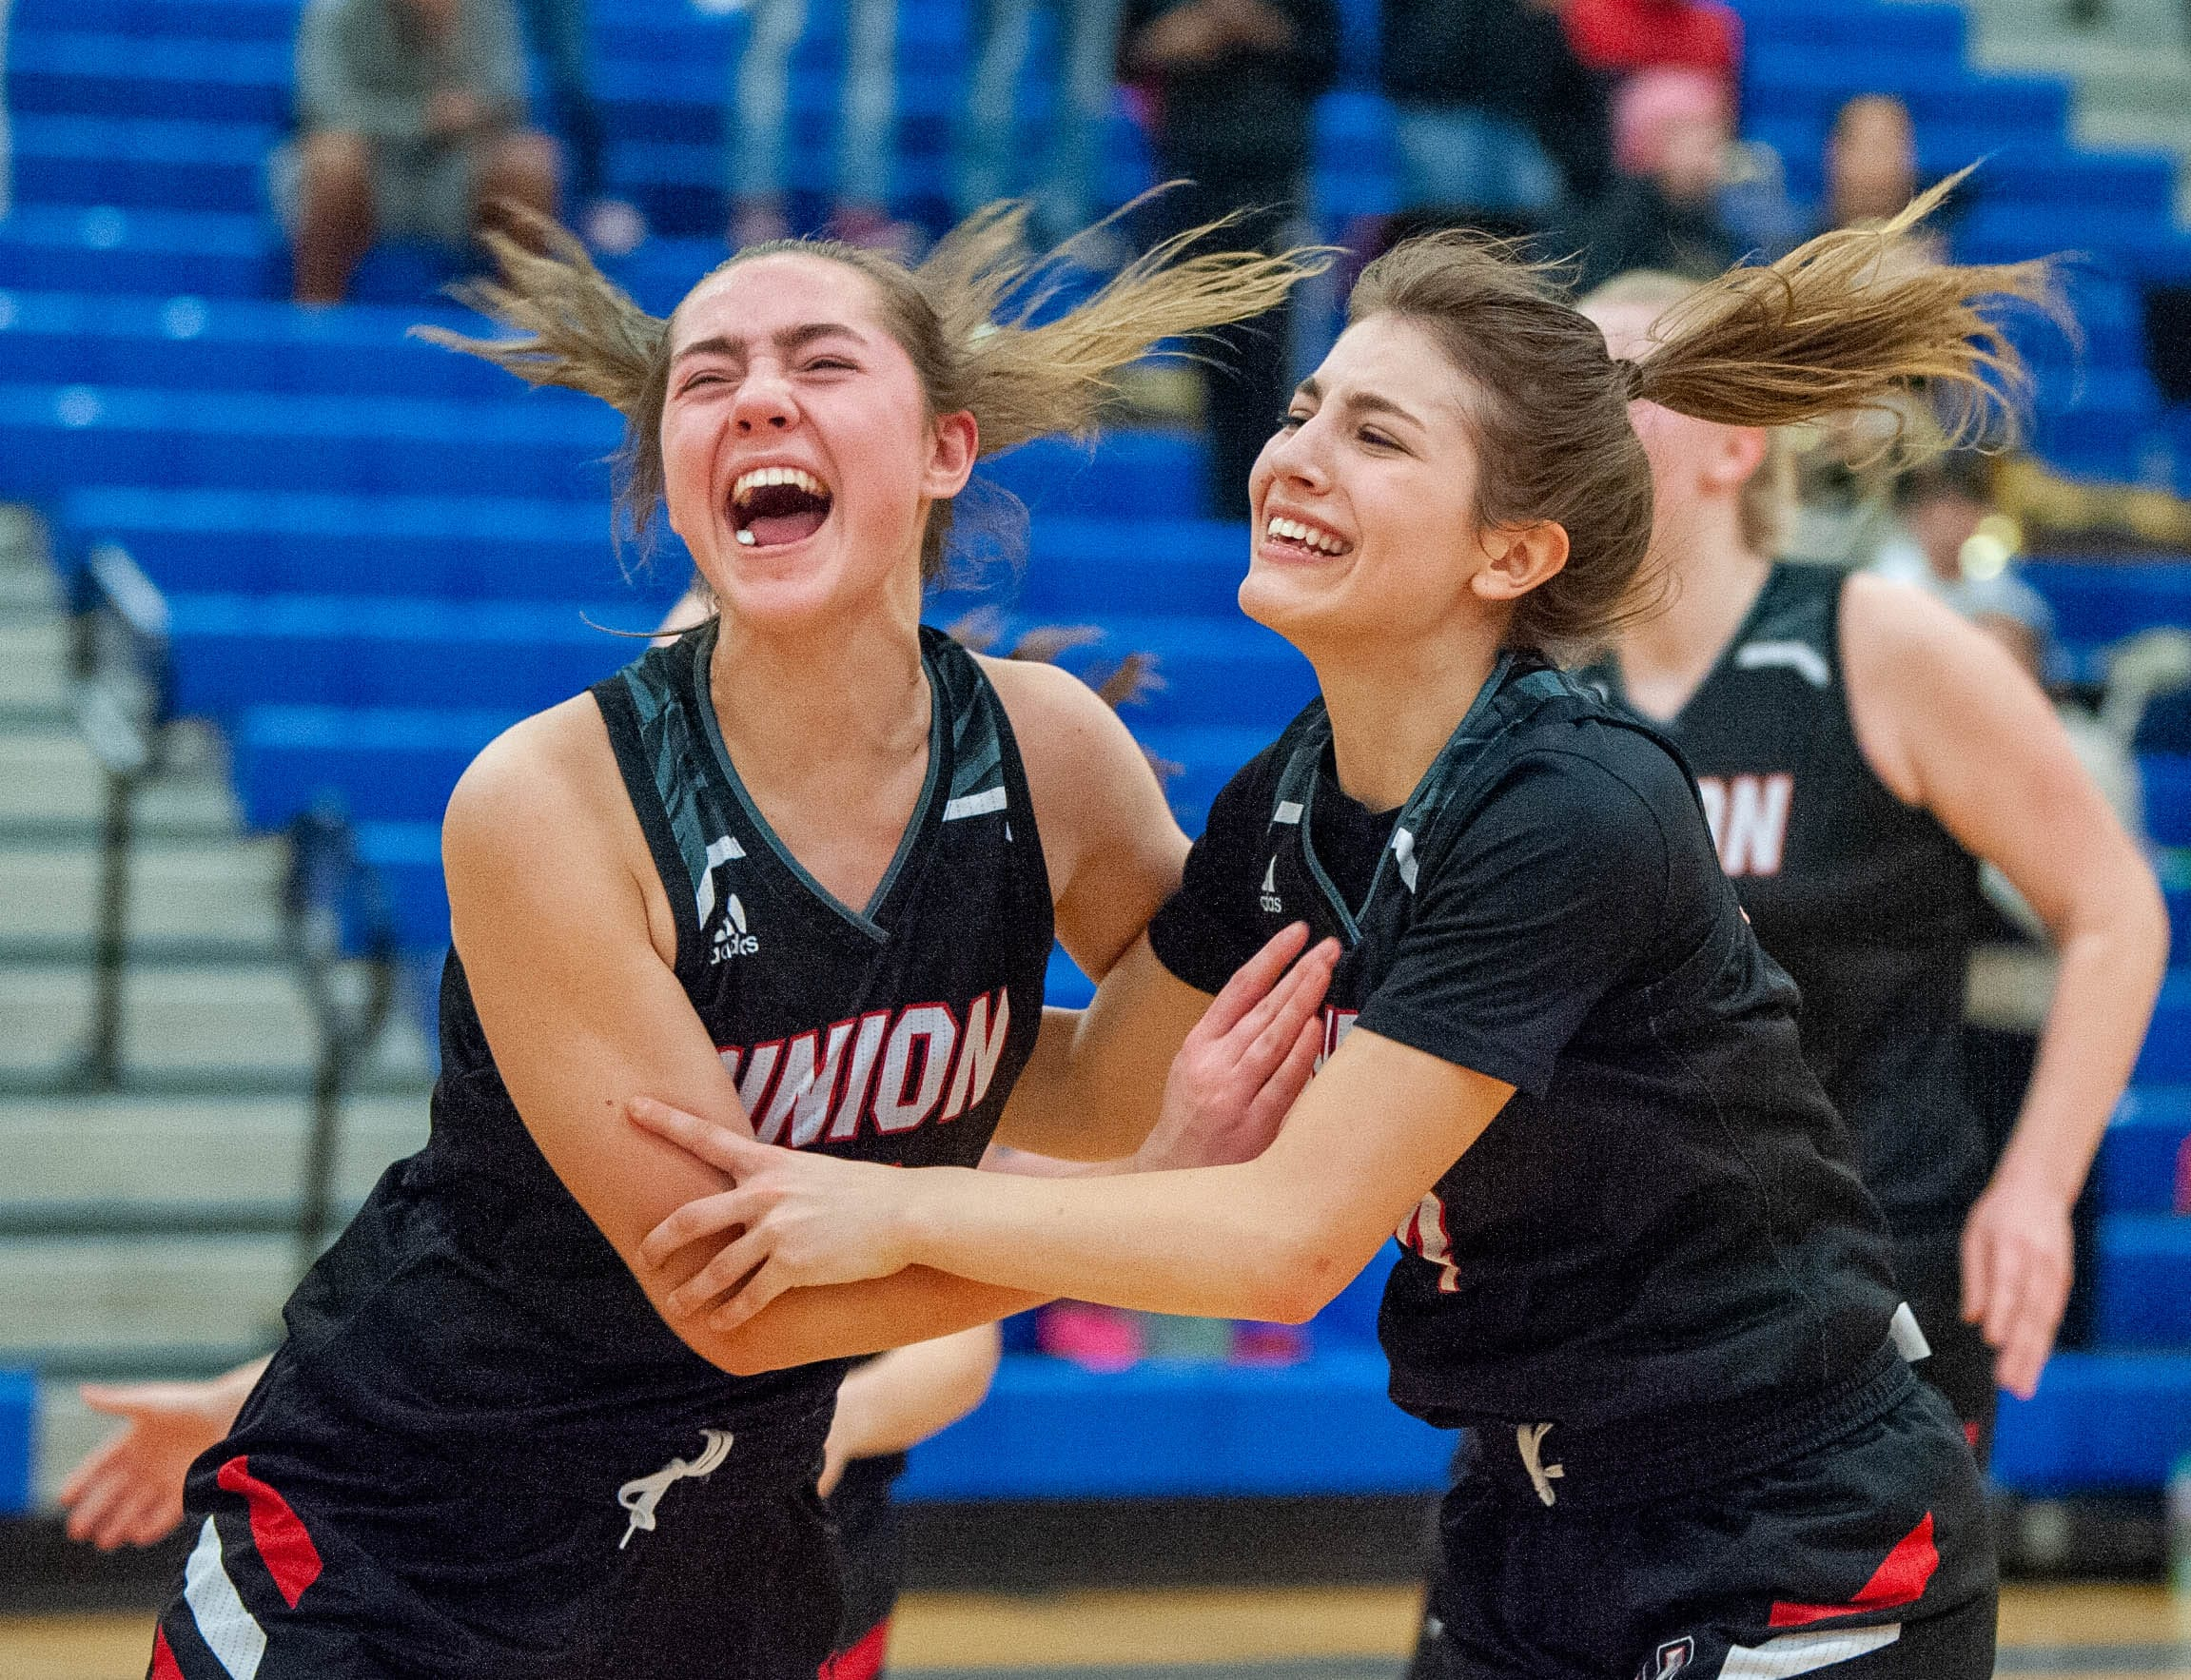 Union's Lolo Weatherspoon, left, and Mason Oberg celebrate their 48-47 win over Todd Beamer in a 4A State Regional on Friday at Auburn Mountainview High School. (Joshua Hart/The Columbian)